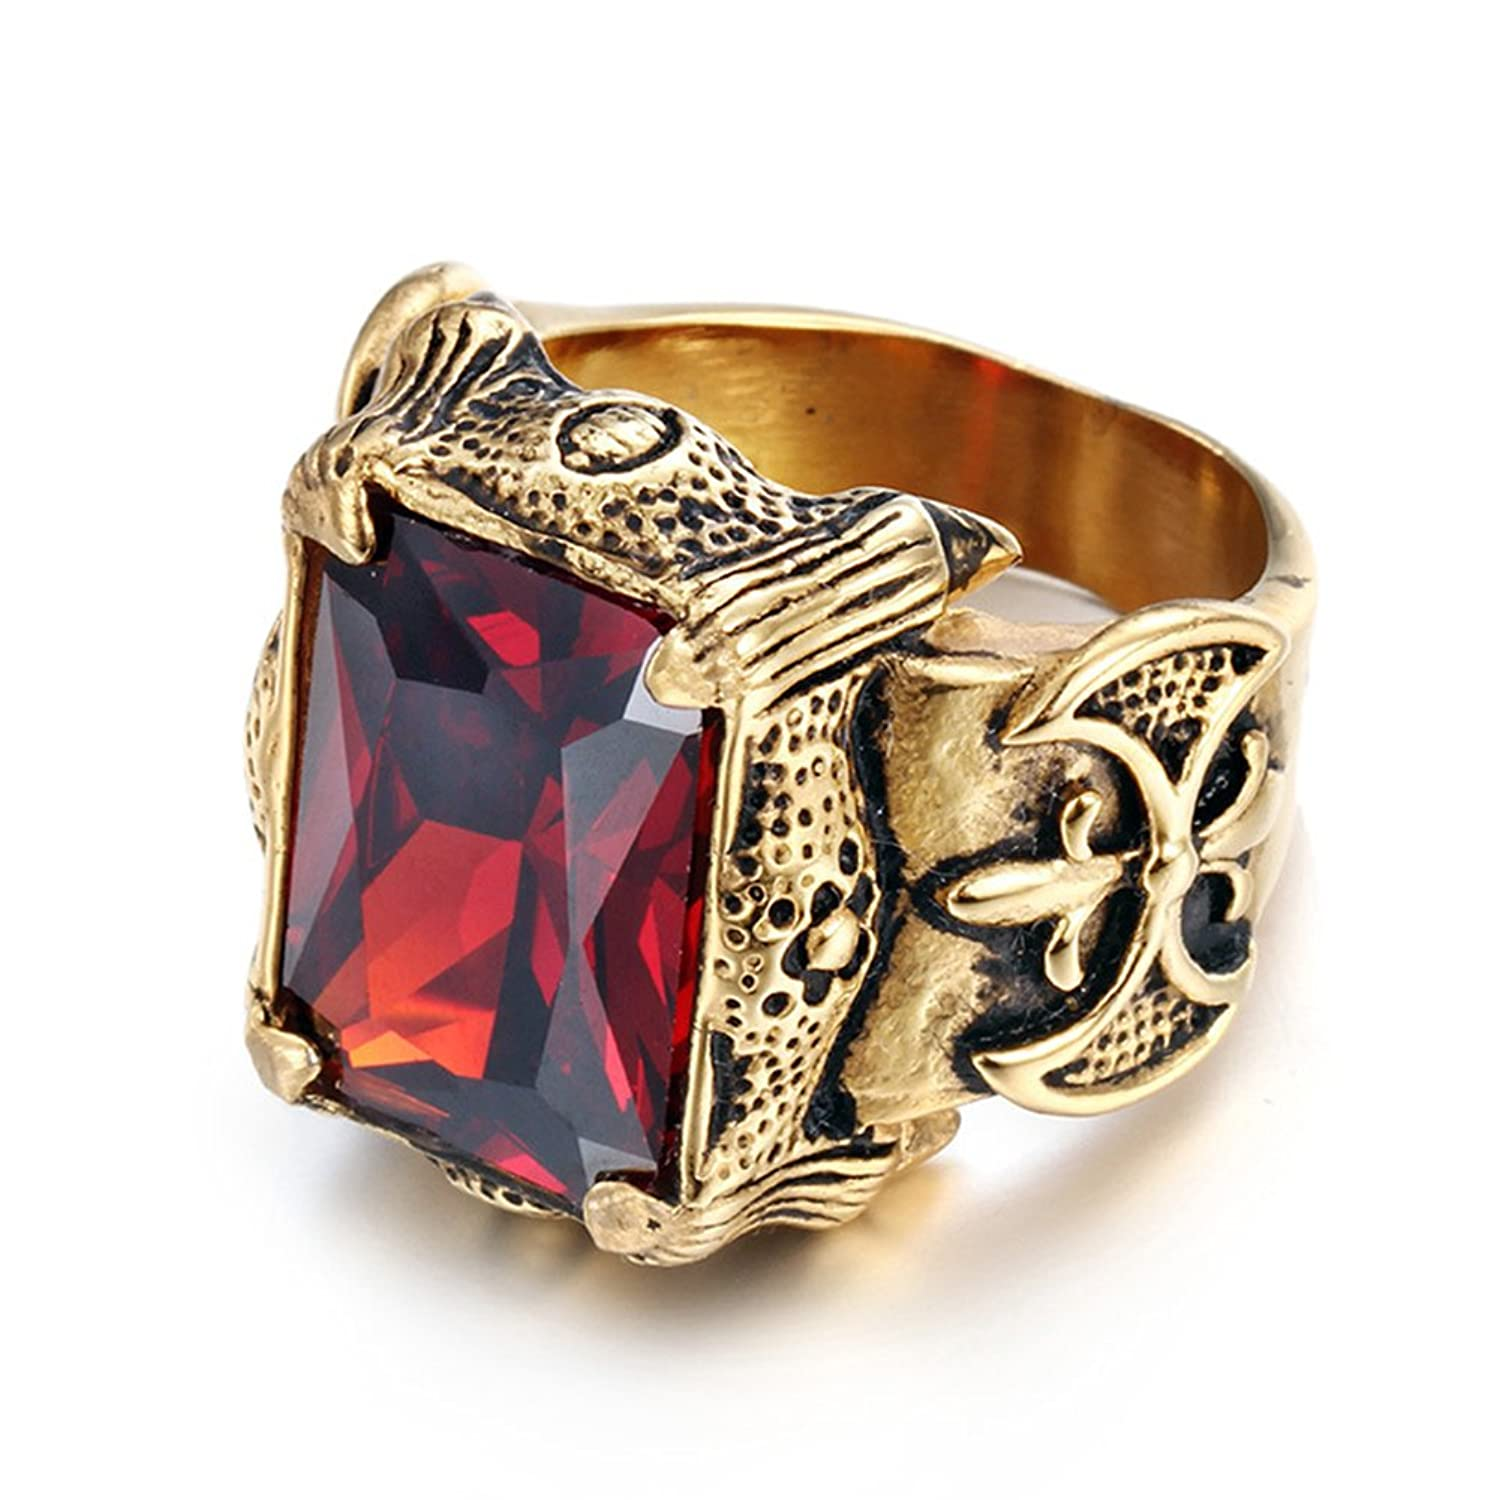 LILILEO Jewelry 361L Gold Titanium Steel Retro Ax Dragon Claws Red Square Zircon Ring For Men's Rings